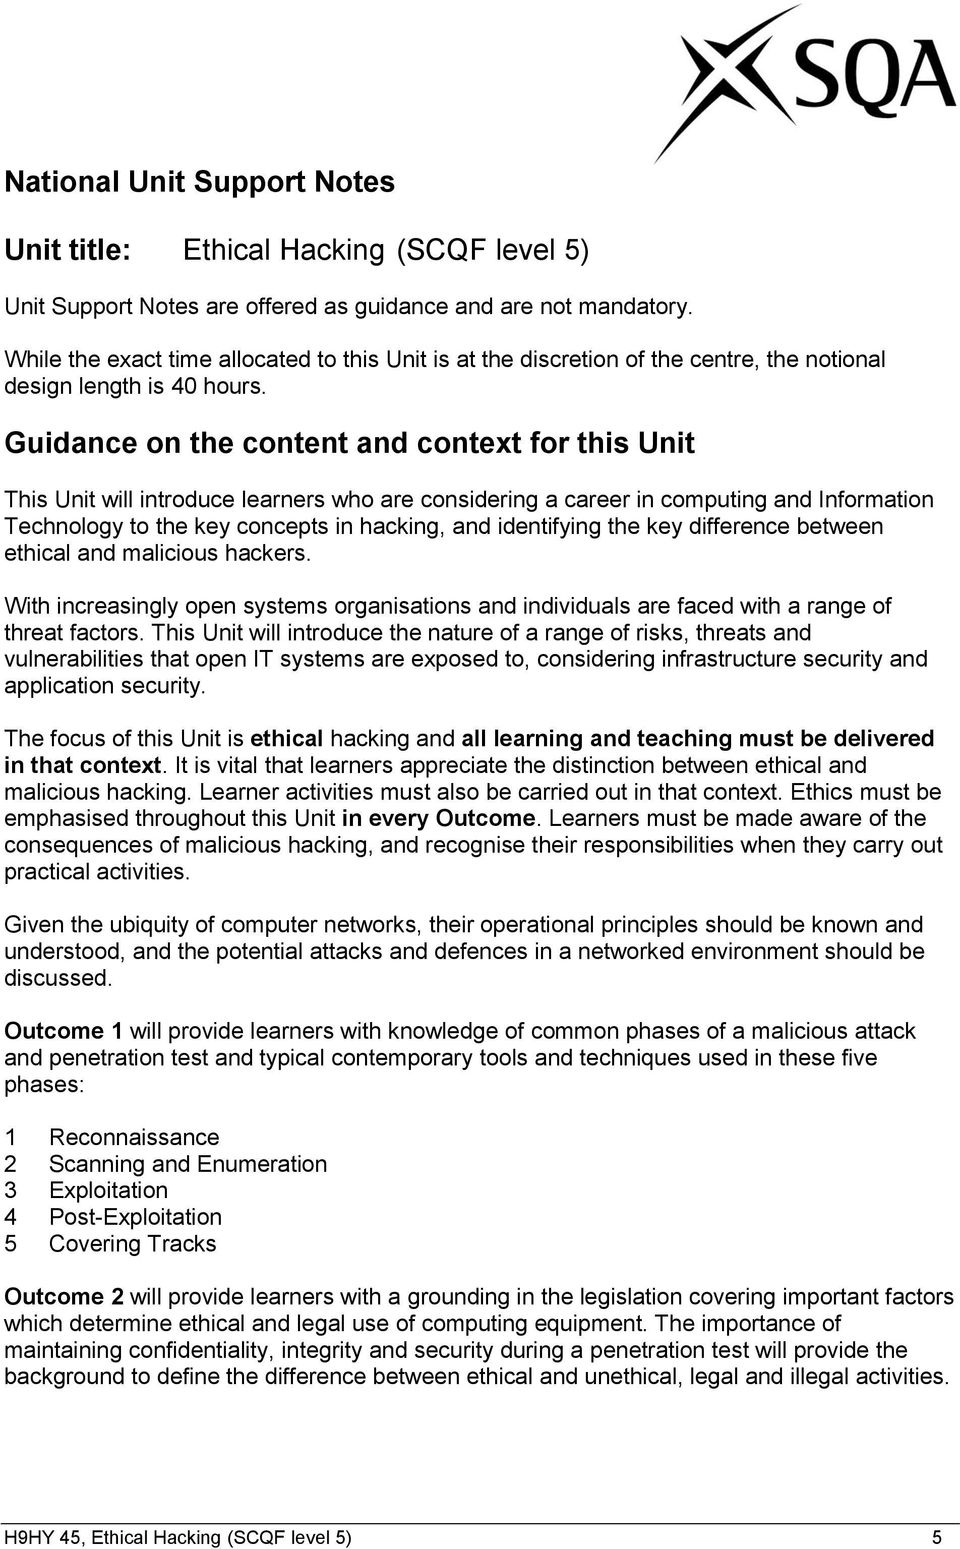 Guidance on the content and context for this Unit This Unit will introduce learners who are considering a career in computing and Information Technology to the key concepts in hacking, and